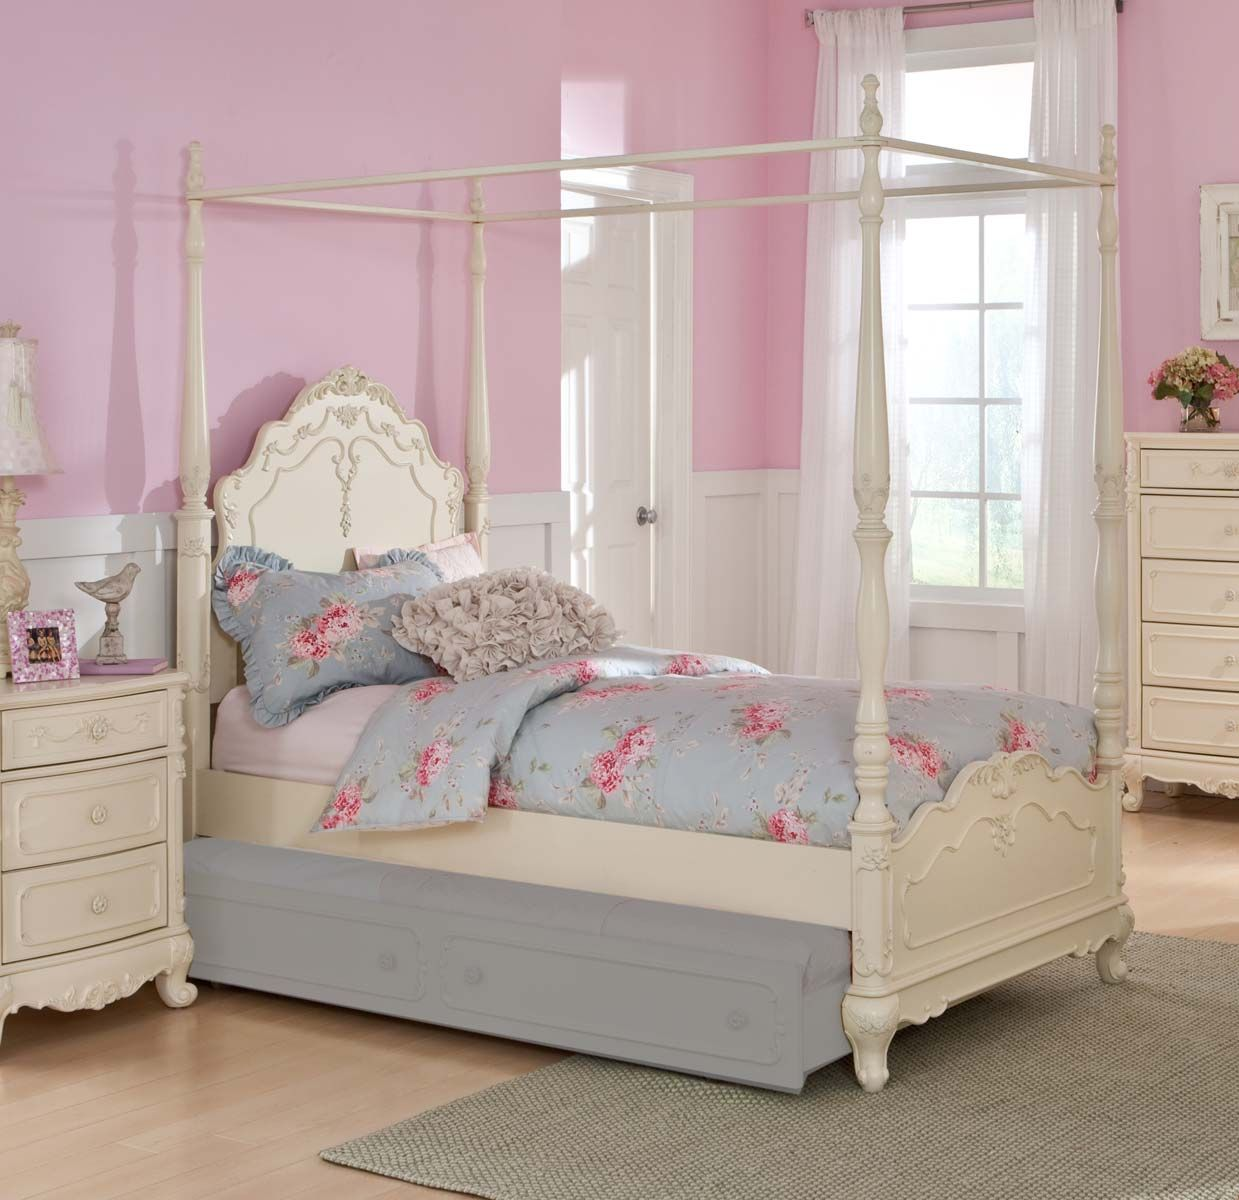 Nice Homelegance Cinderella Canopy Poster Bed In Antique White   Twin Without  Trundle Traditional Furniture (woo, Bit Pricey!